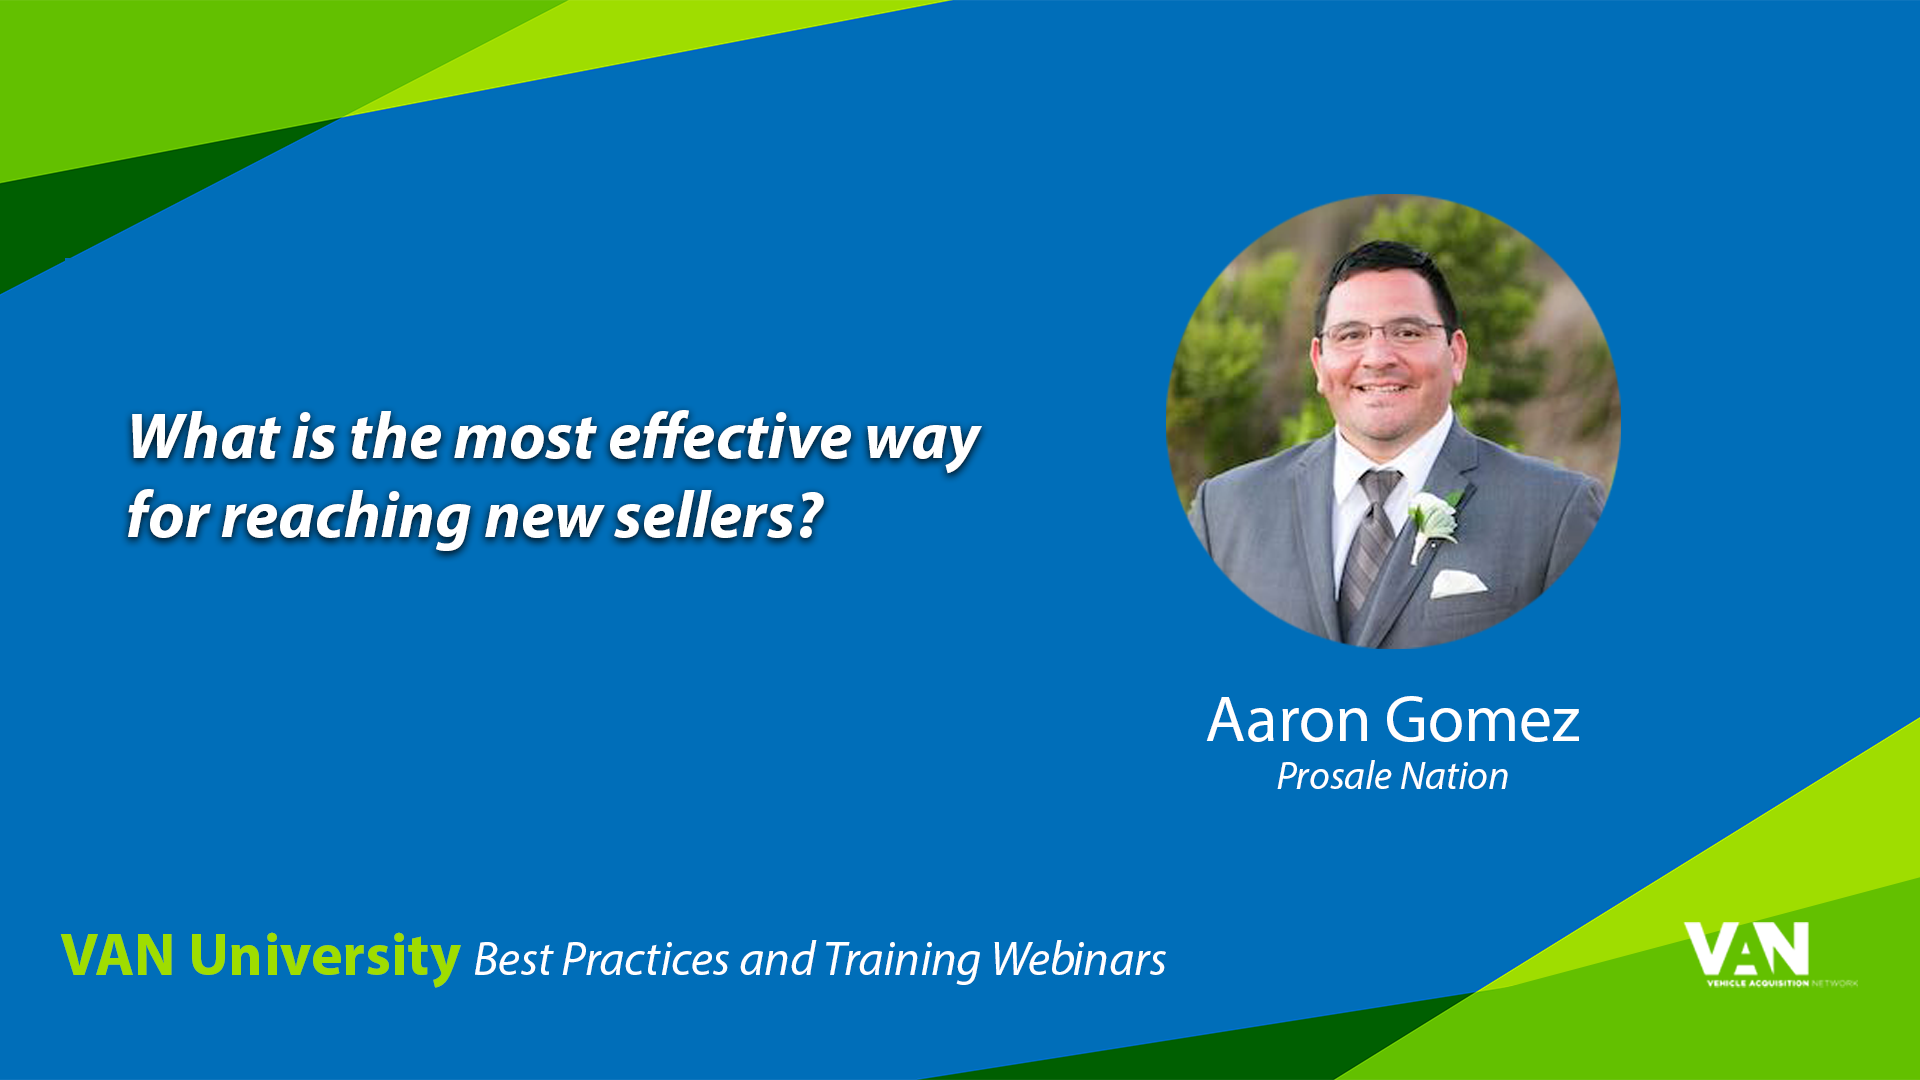 What is the most effective way to reach individual sellers?